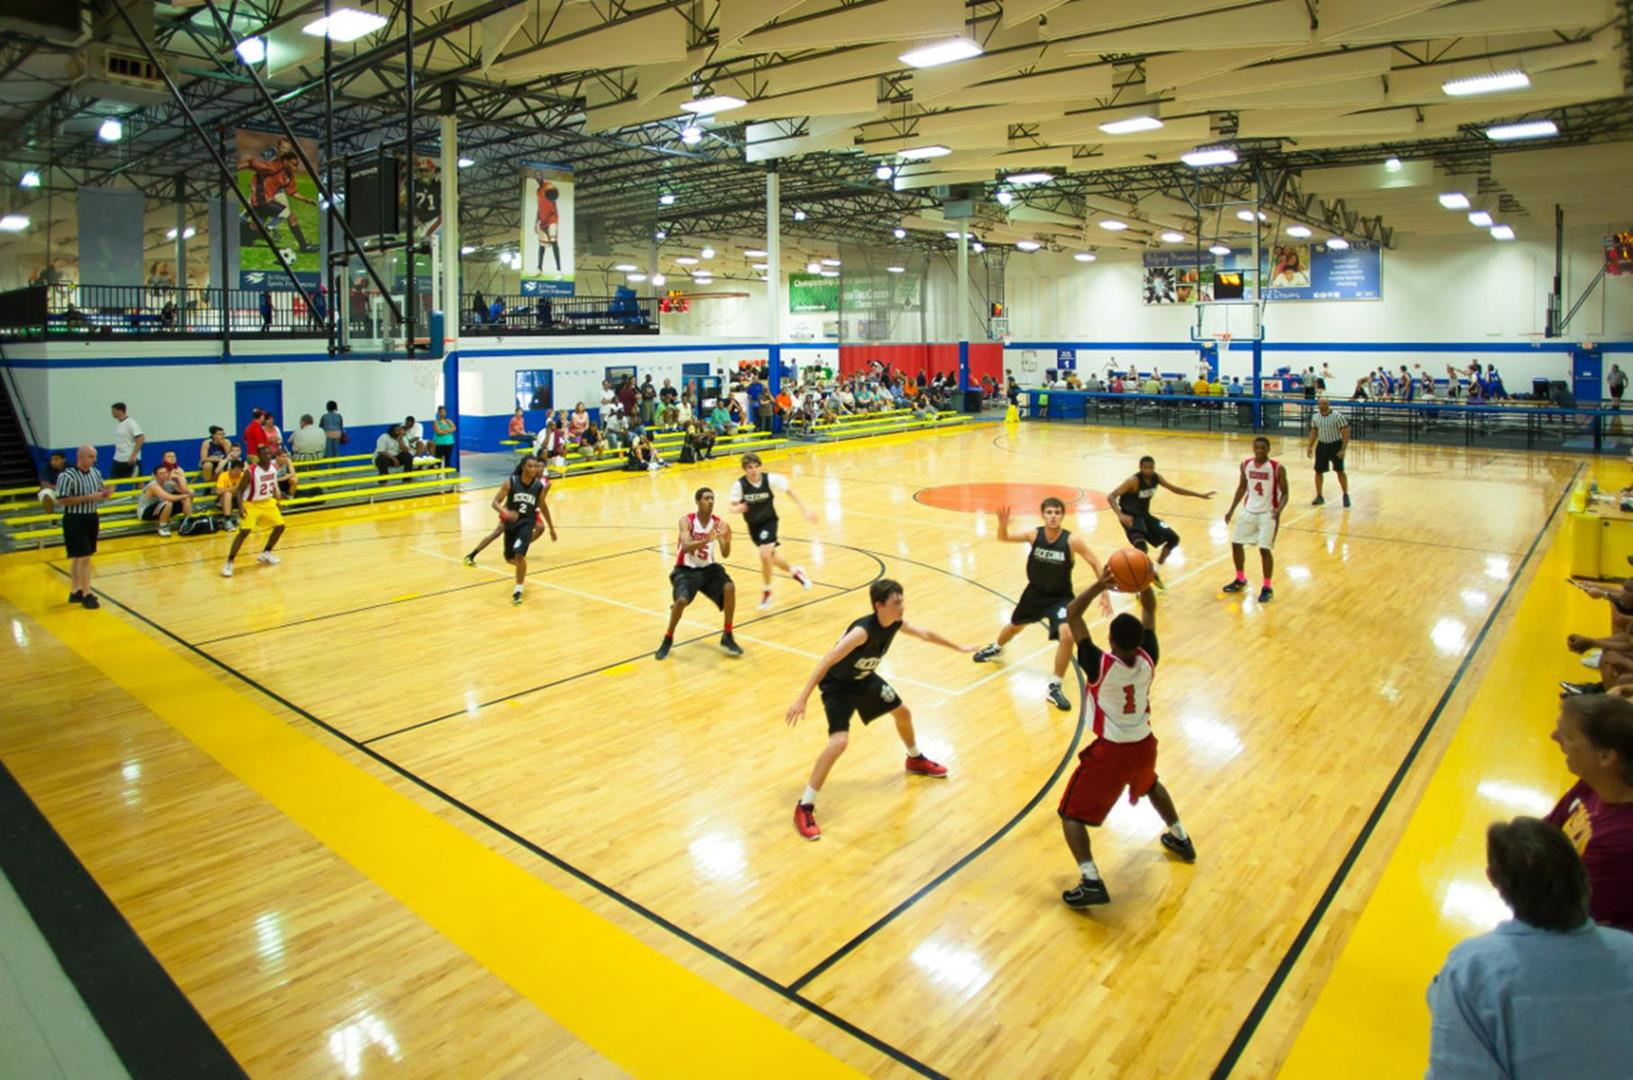 Tournaments Shine with Hamilton County, Indiana by Your Side